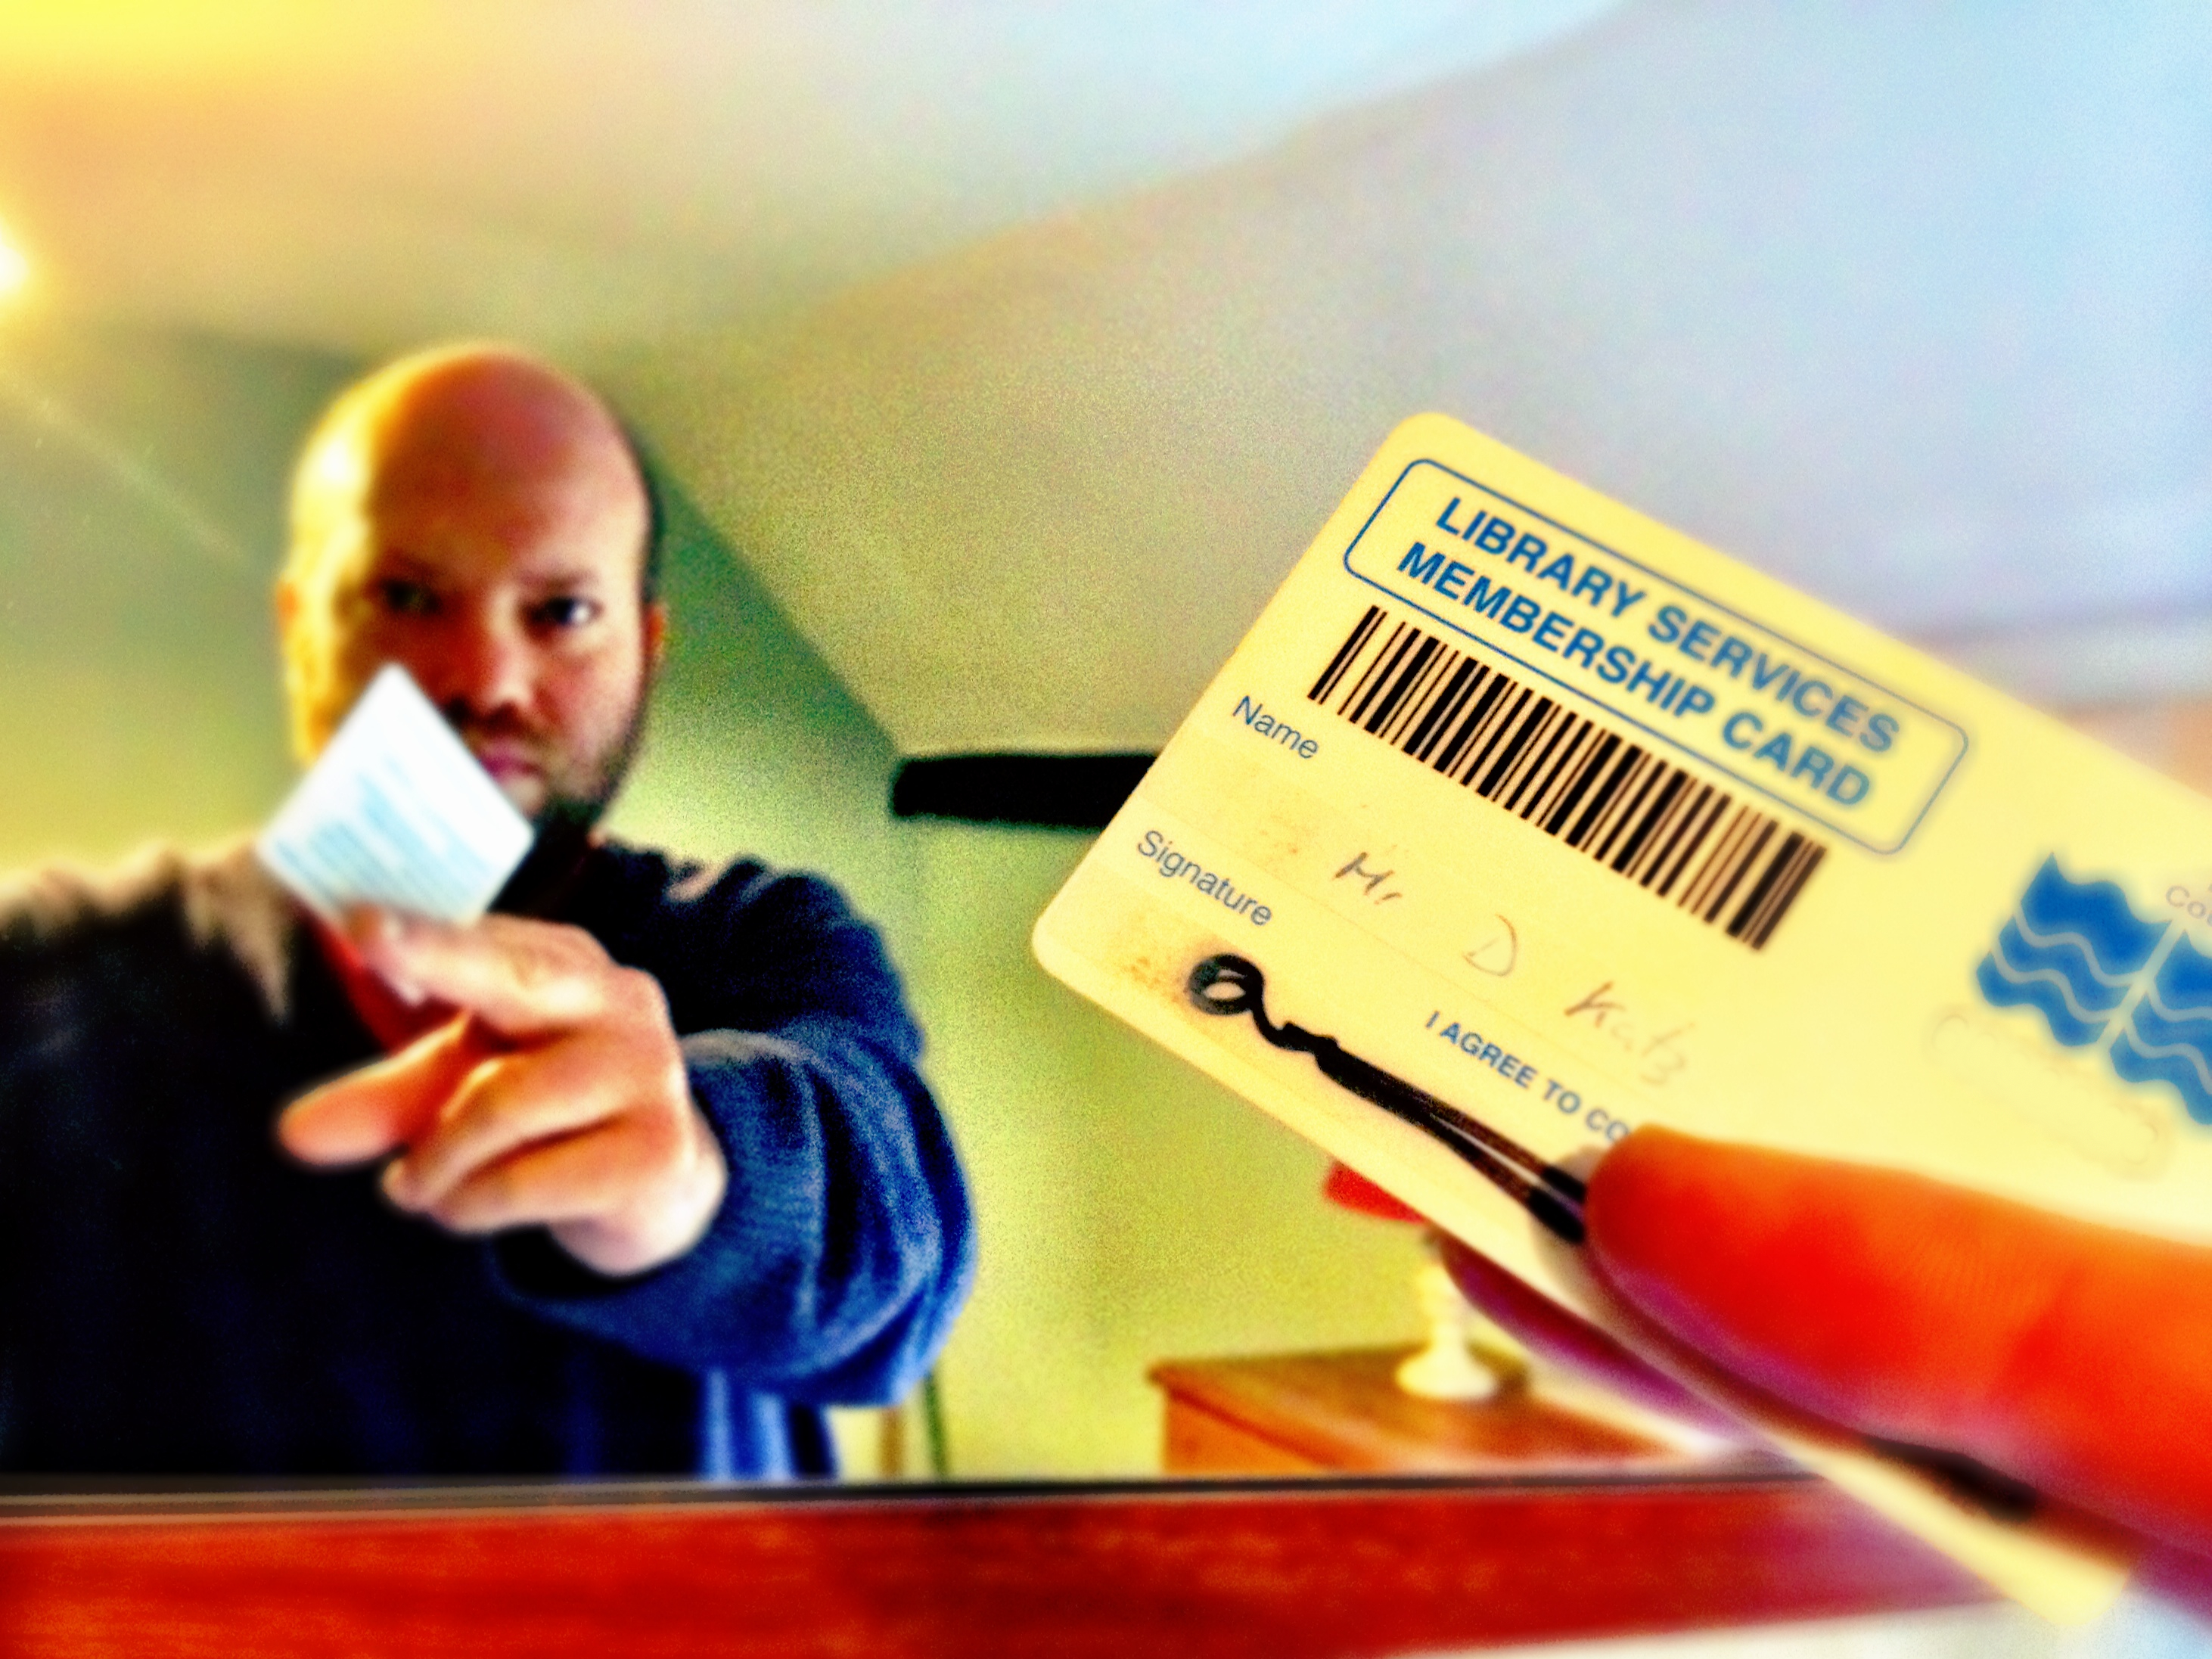 Me and my library card, reflected in a mirror.